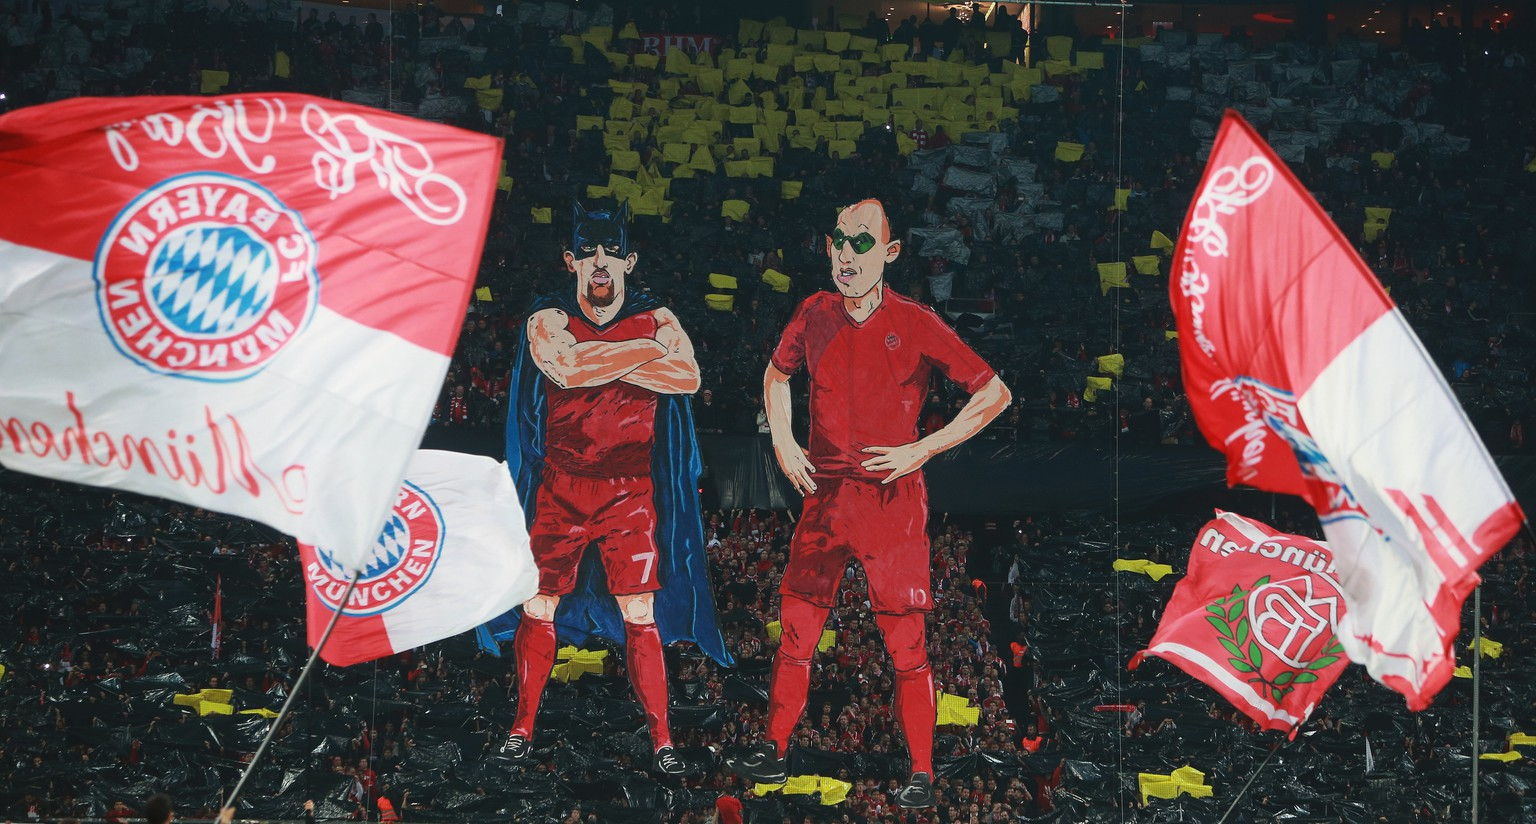 MUNICH, GERMANY - APRIL 28:  e fans of Bayern Muenchen make character figures of Franck Ribery and Arjen Robben as batman and robin prior to the start of the DFB Cup semi final match between FC Bayern Muenchen and Borussia Dortmund at Allianz Arena on April 28, 2015 in Munich, Germany.  (Photo by Alex Grimm/Bongarts/Getty Images)